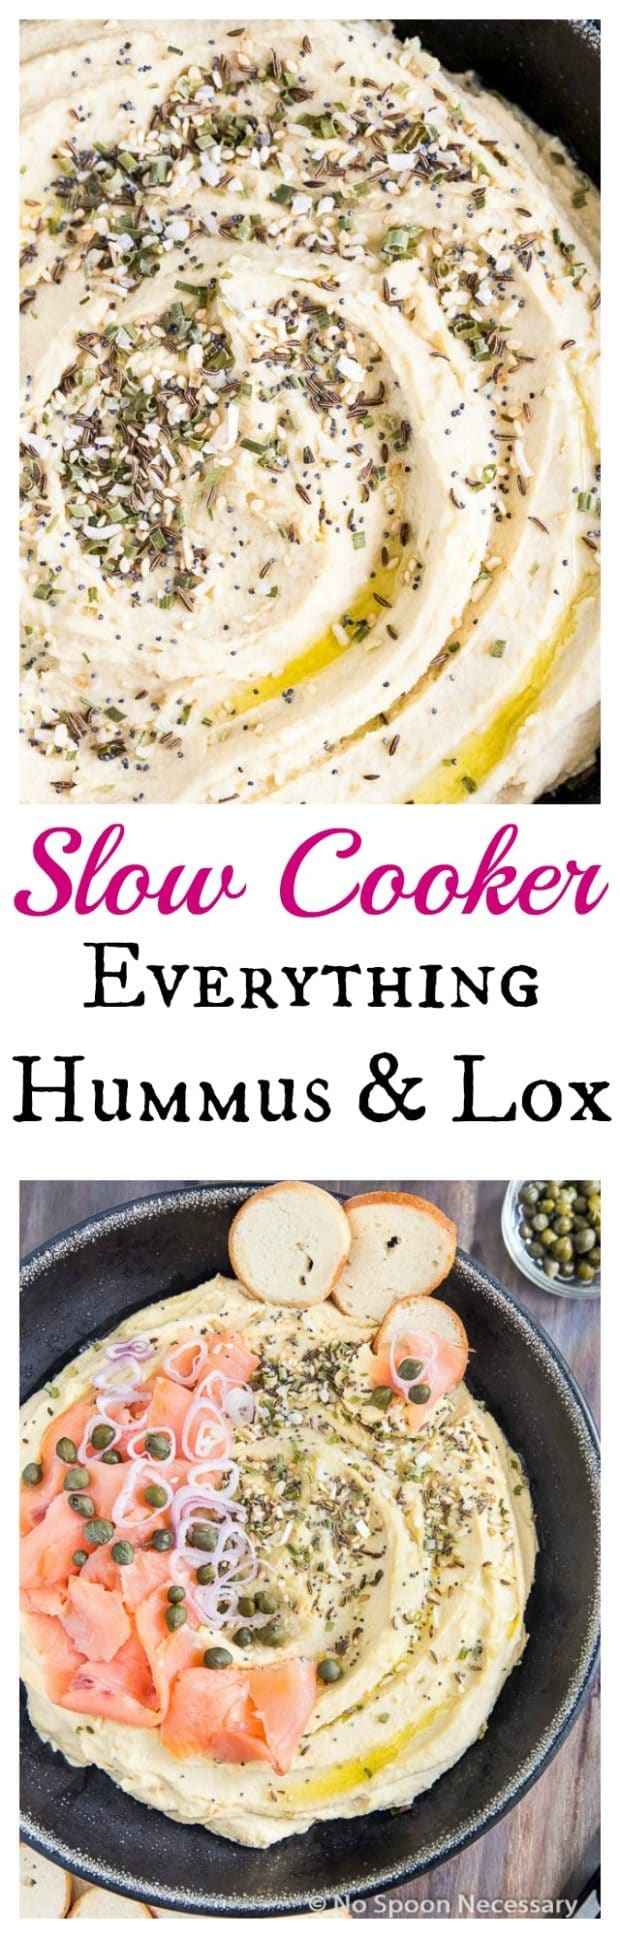 Slow Cooker Everything Hummus & Lox